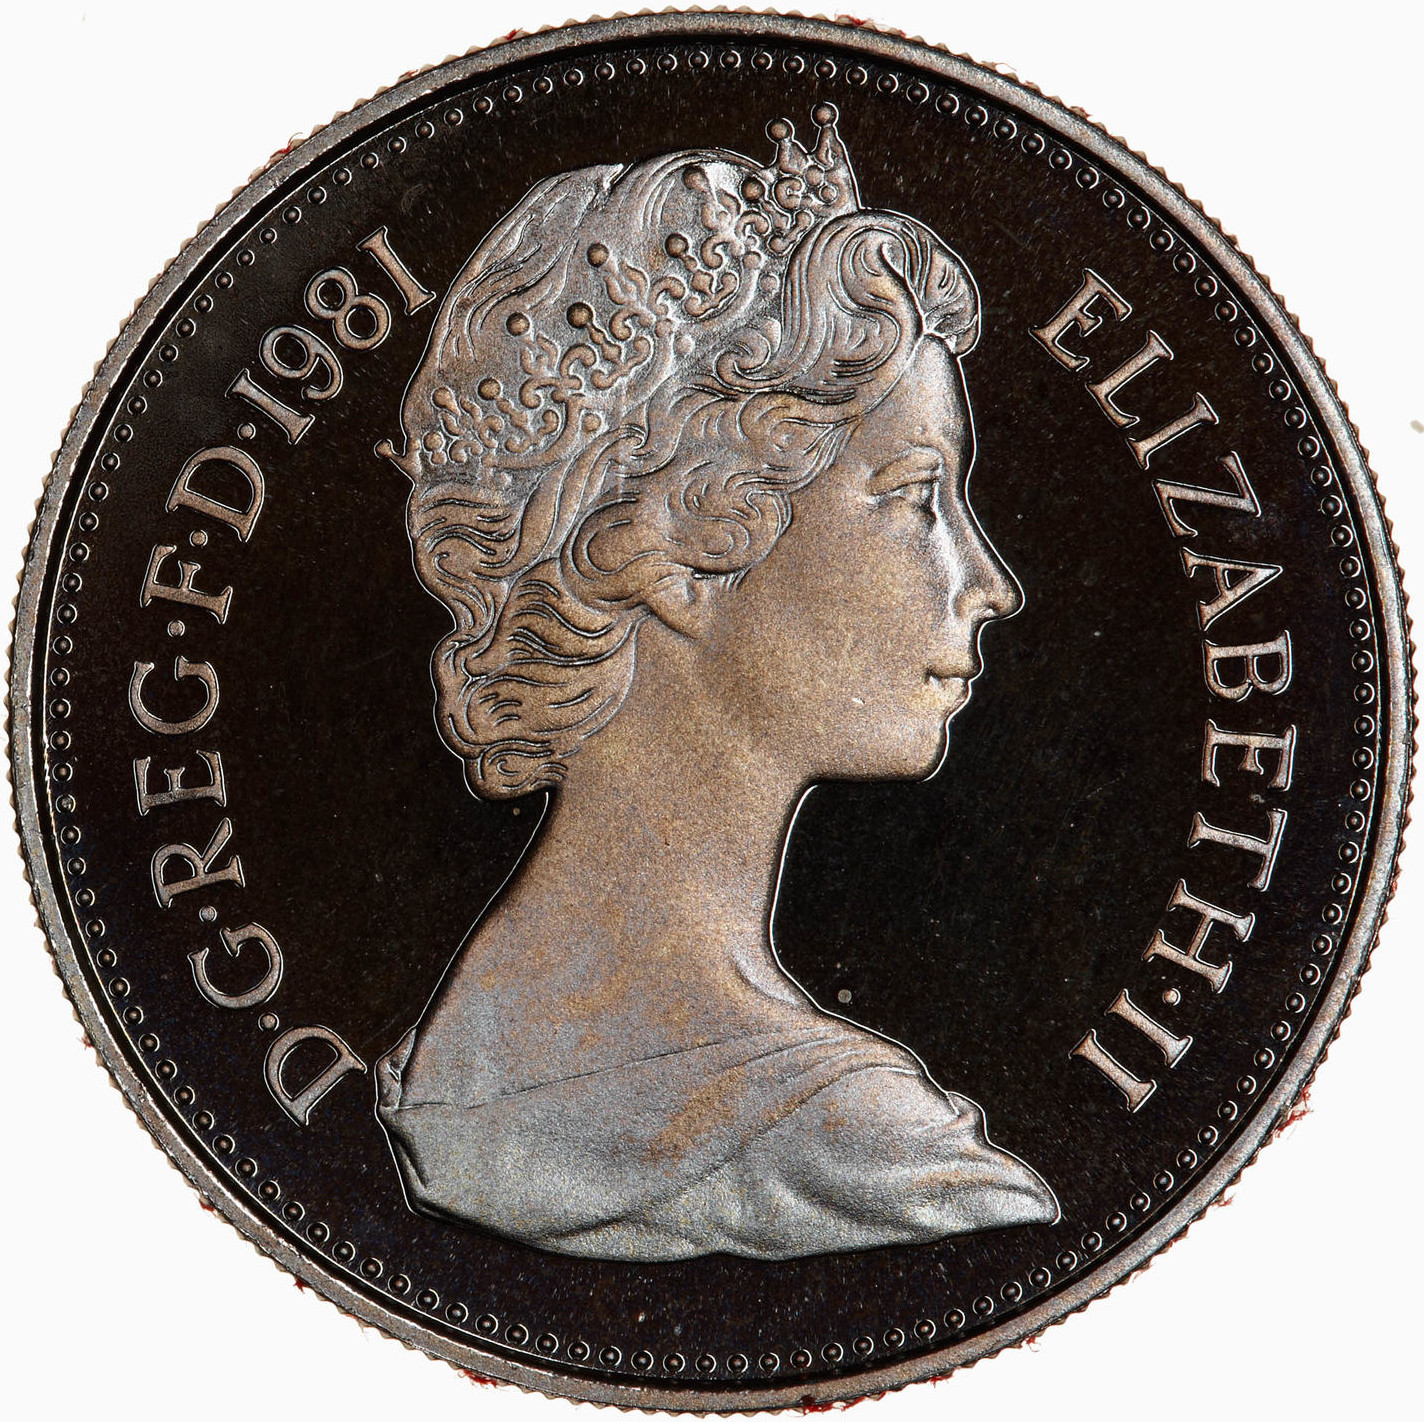 Five Pence 1981 (Proof only): Photo Proof Coin - 5 New Pence, Elizabeth II, Great Britain, 1981